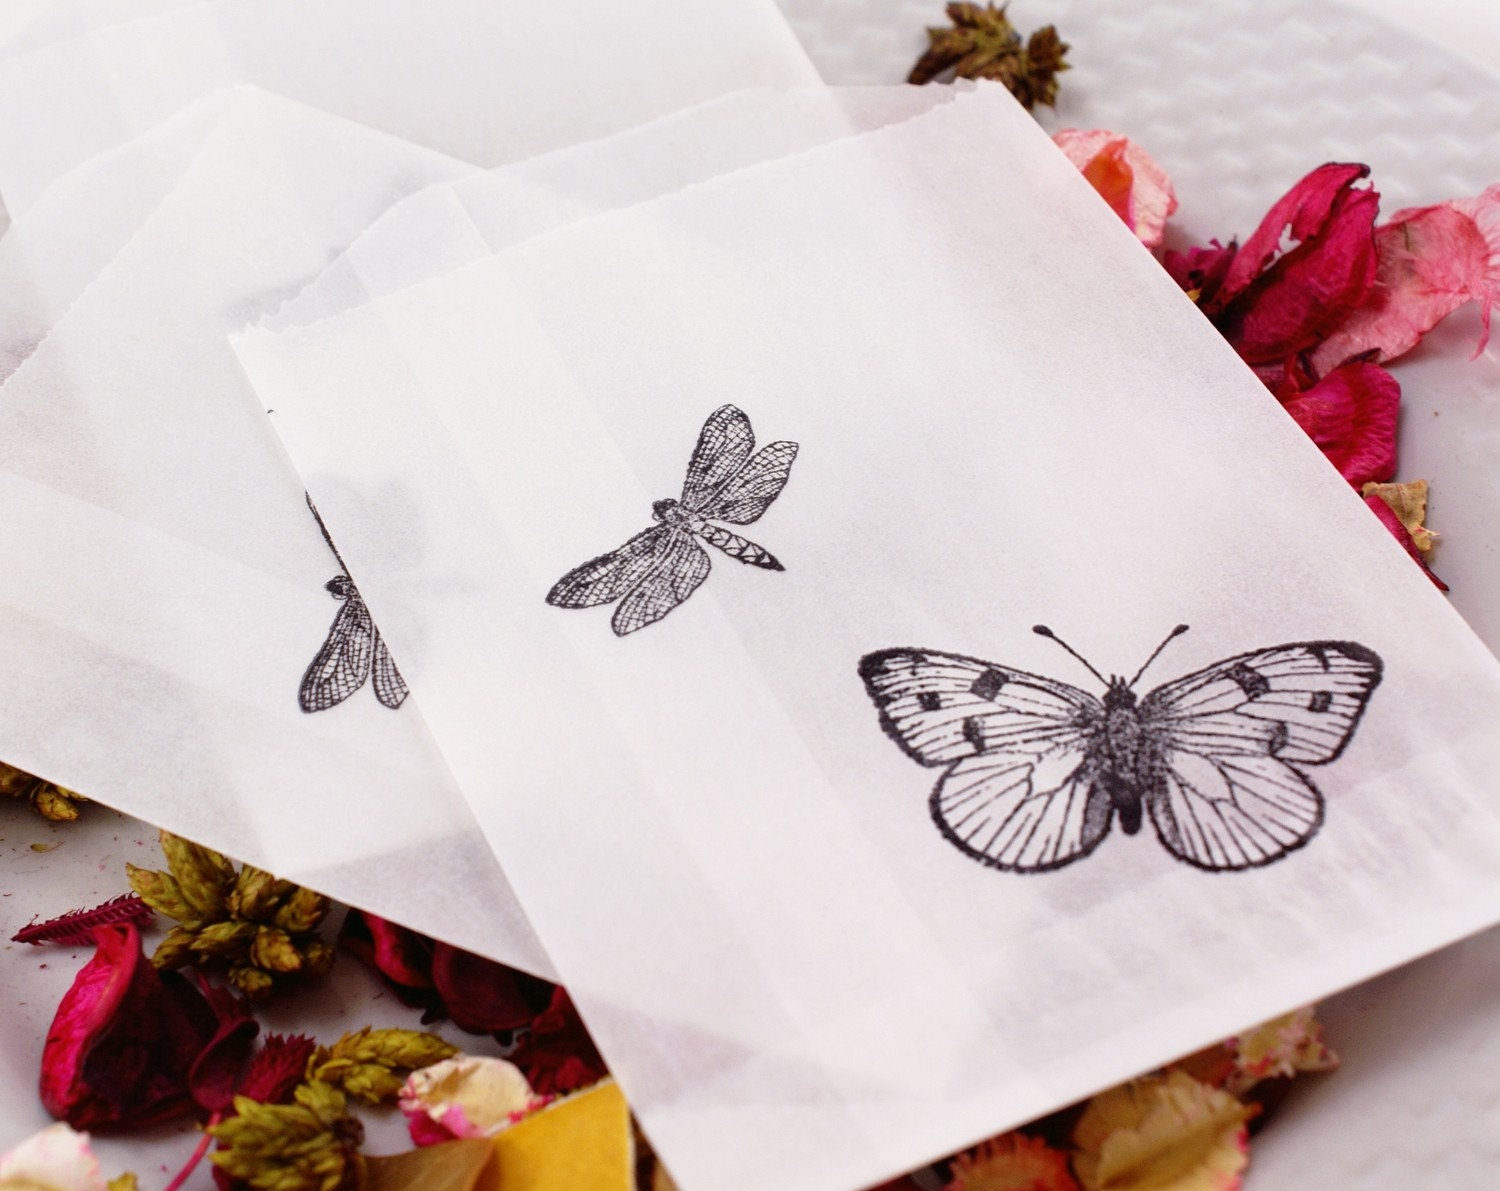 set of 100 BuTTERFLY & DRAGONFLY Hand Stamped Semi-transparent FOOD SAFE Wax Paper Glassine Bags - 3.75 x 5